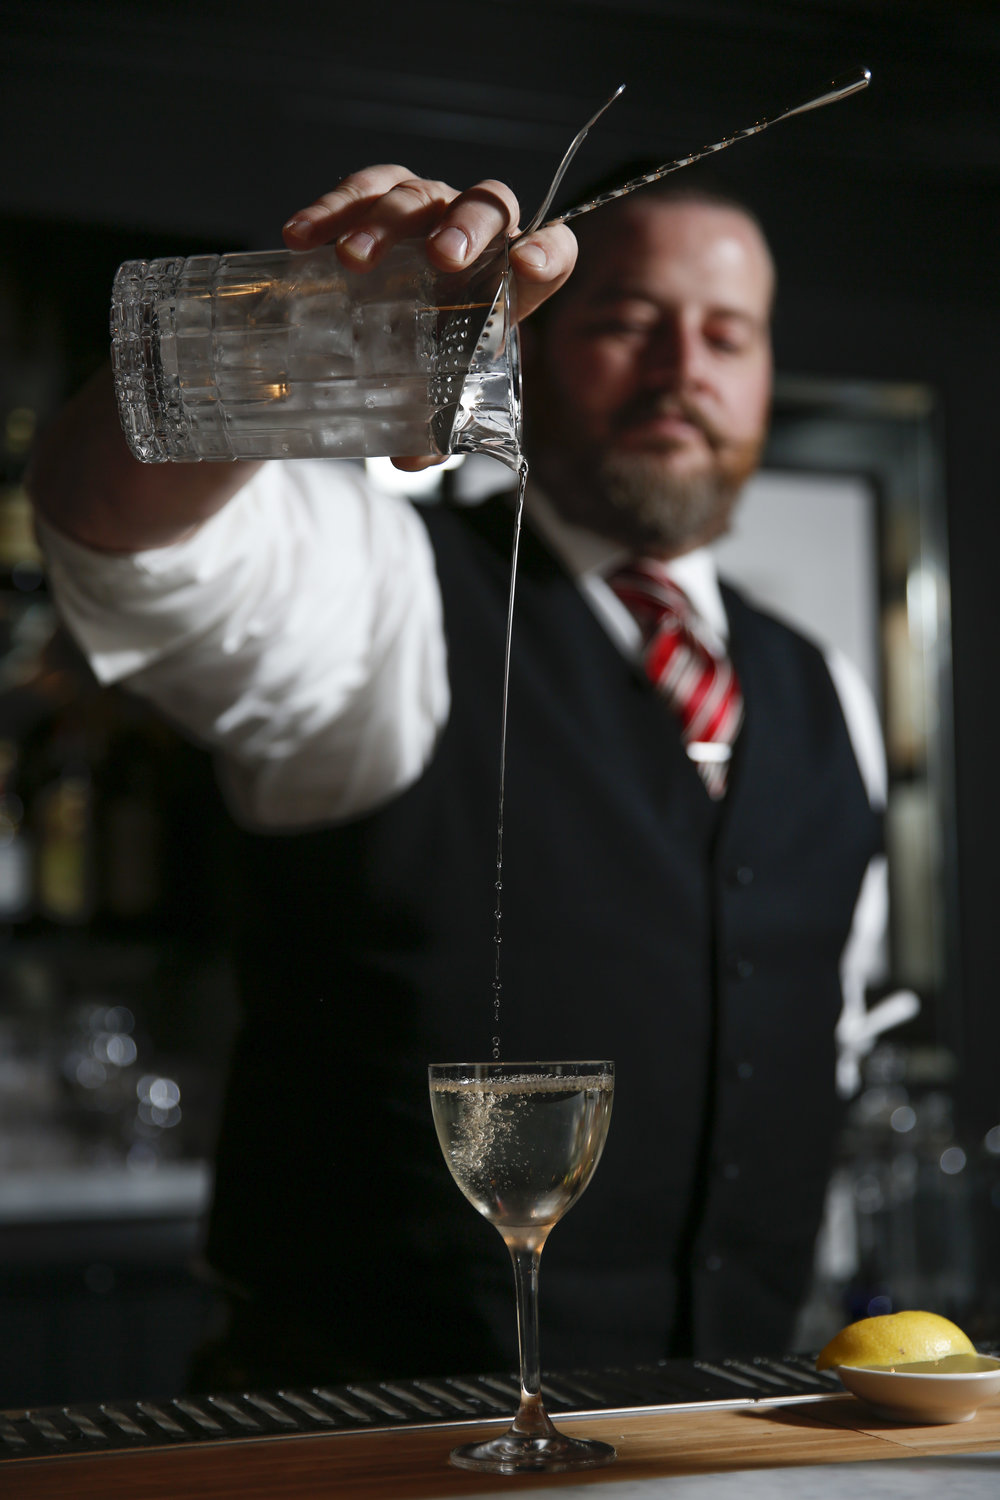 Brandon Clements bartender with Saratoga, an American restaurant with a full bar, makes a drink. The restaurant opens next week located at 1000 Larkin Street in San Francisco, Calif. on Thursday, November 3, 2016.